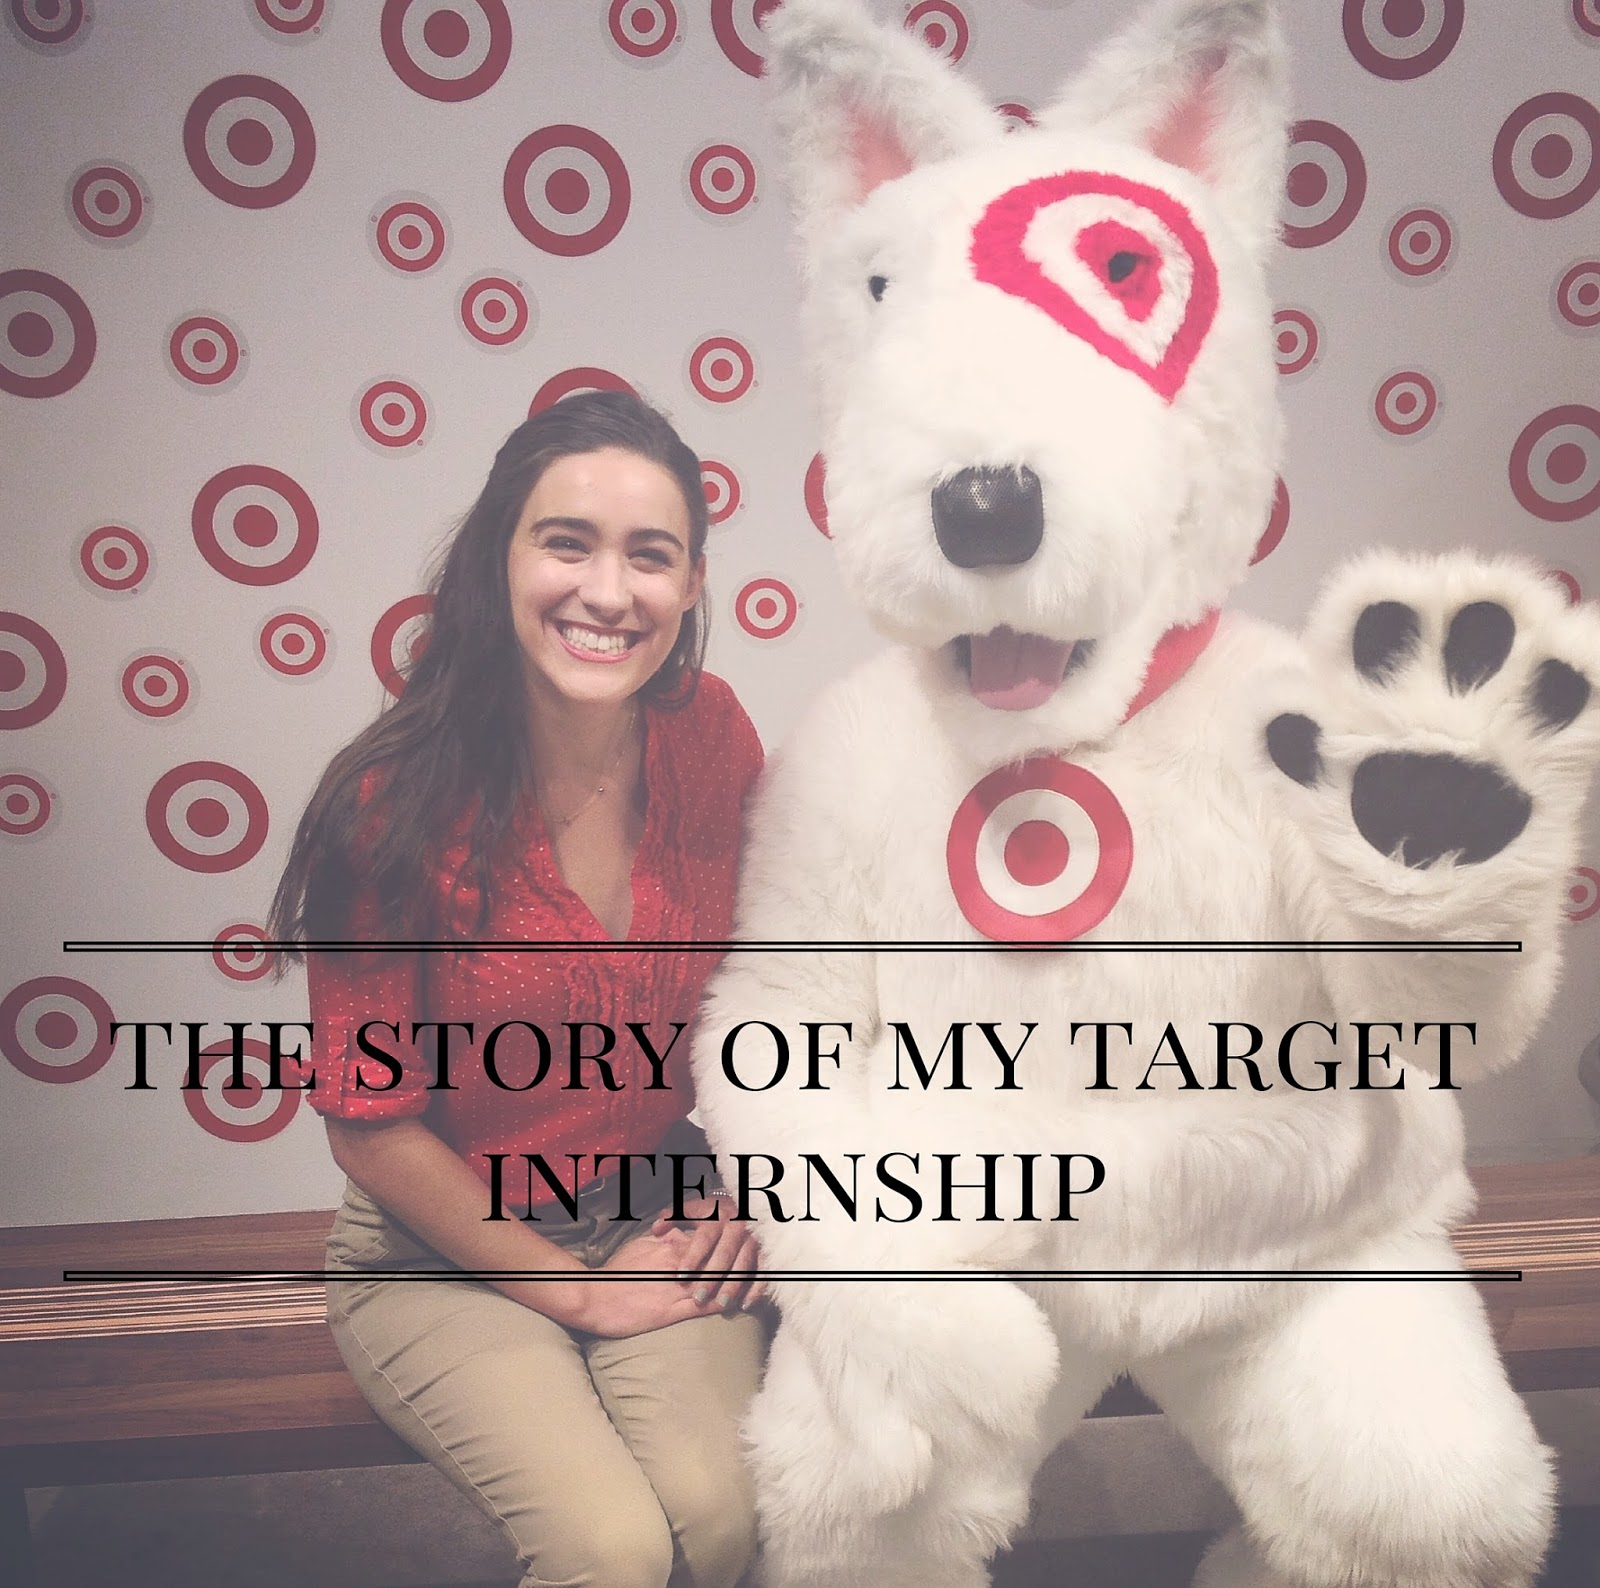 The Story Of My Target Internship | http://www.alyssajfreitas.com/2015/09/the-story-of-my-target-internship.html